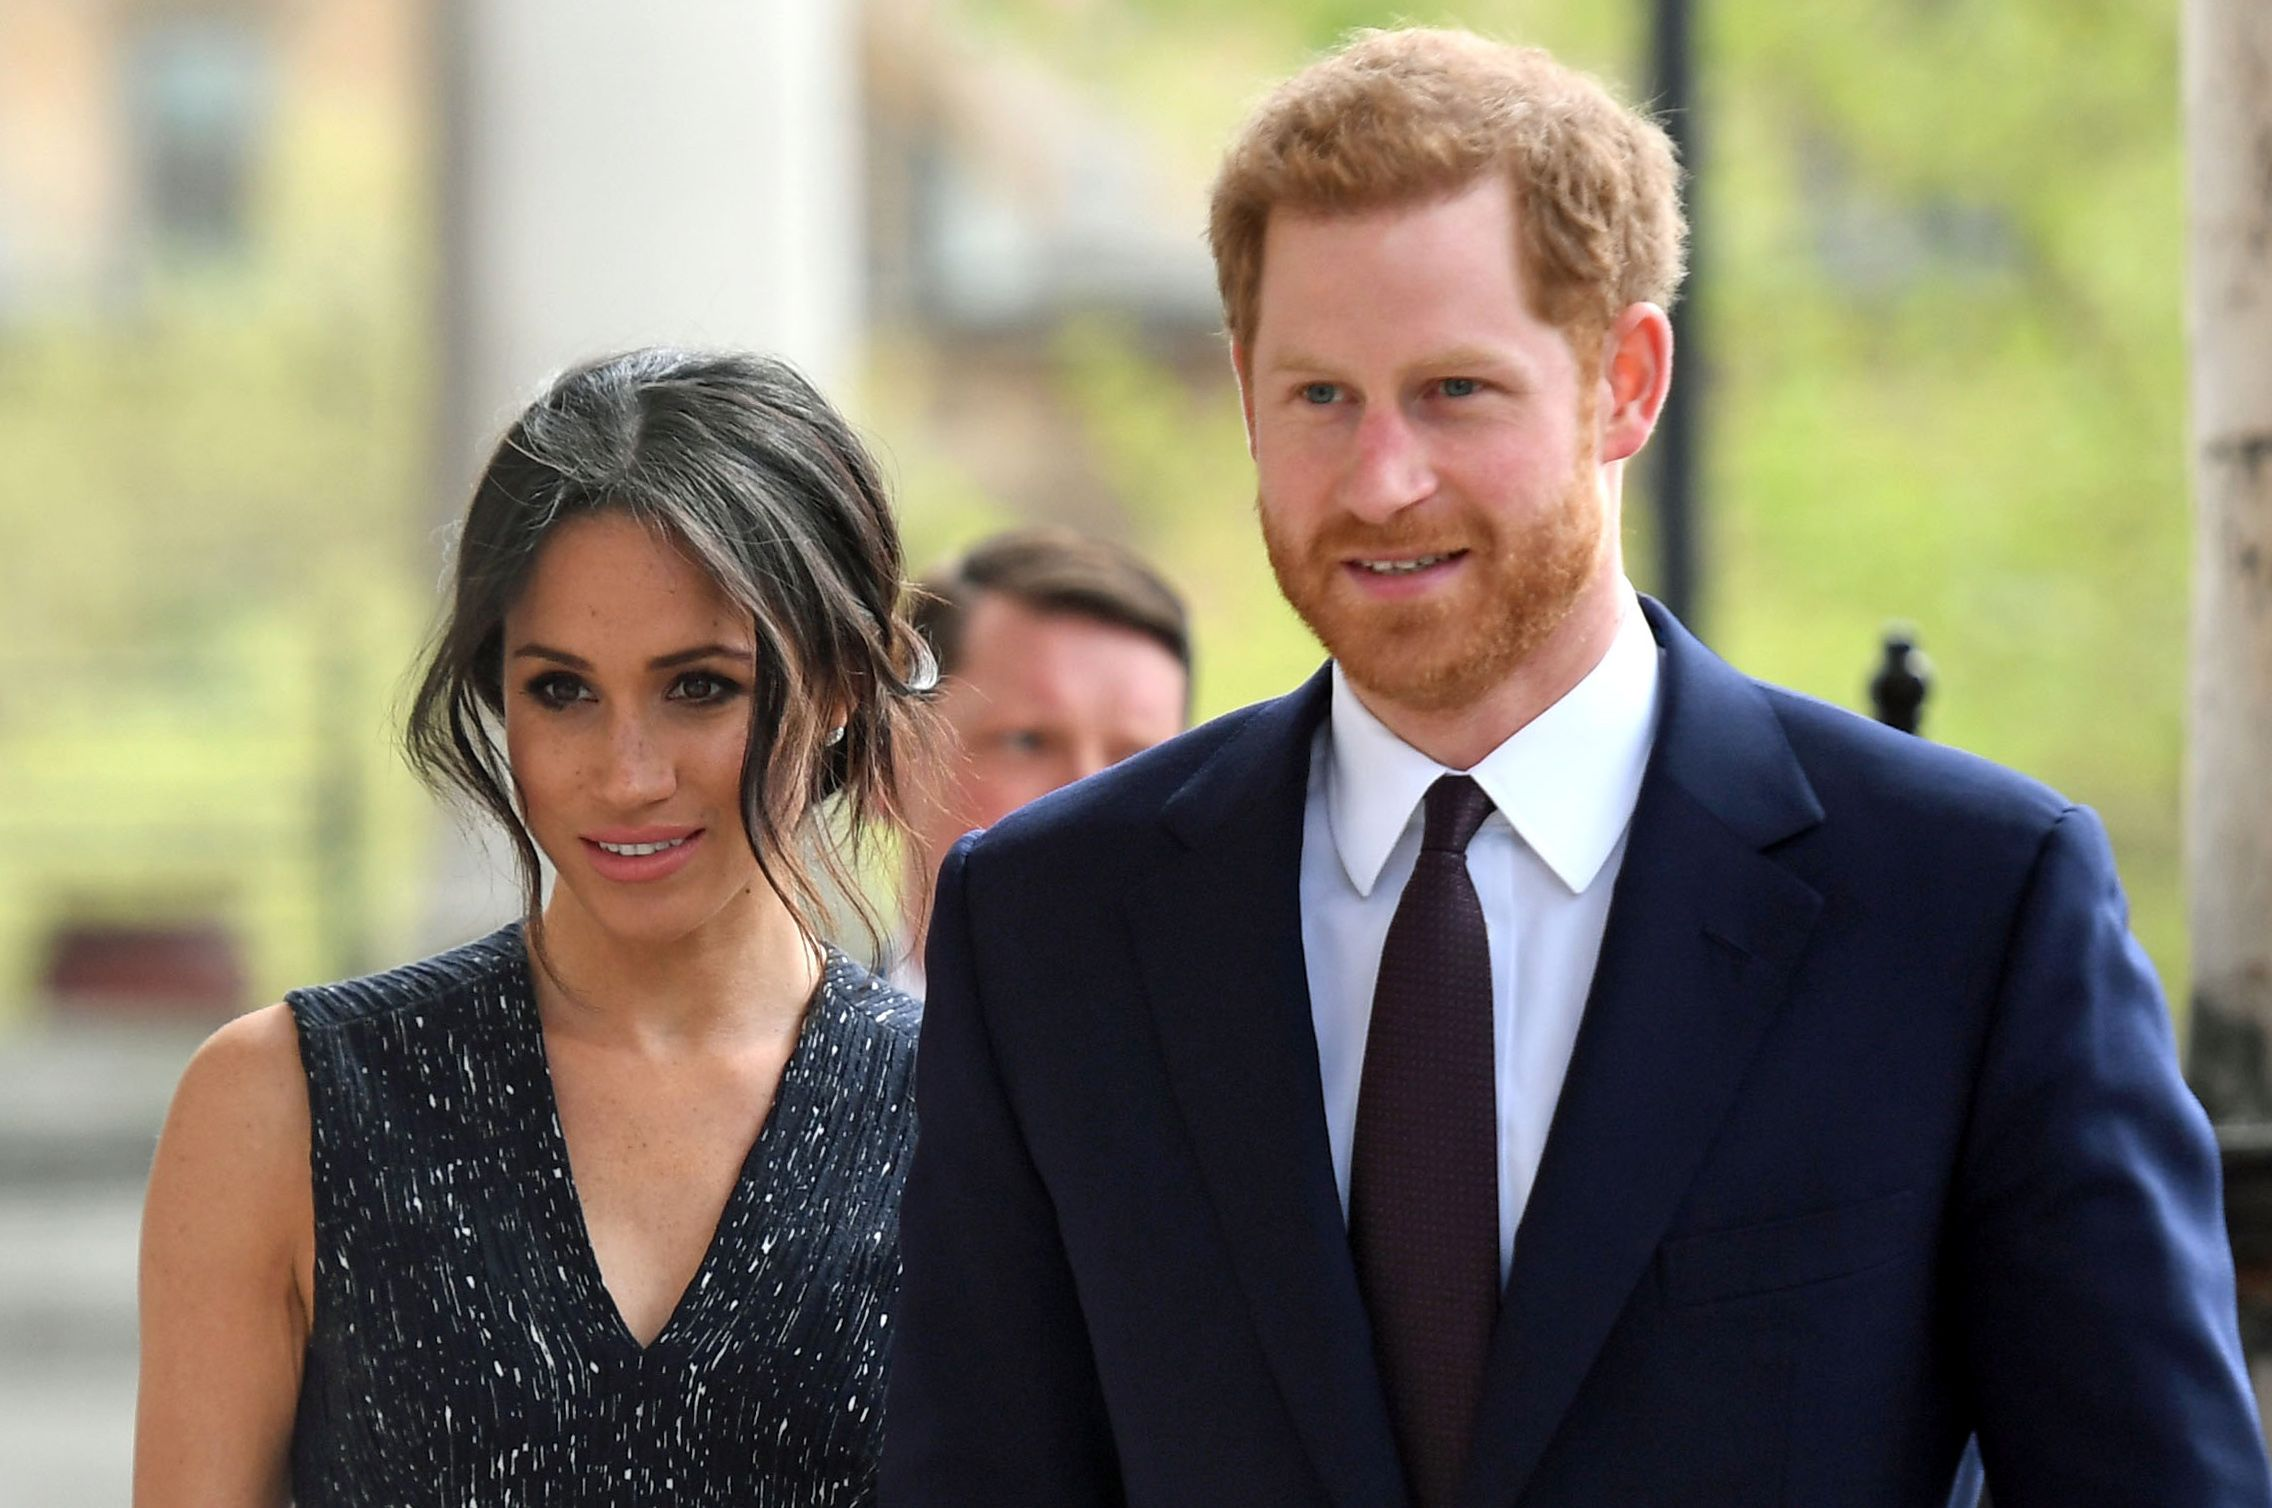 Beginning April 1st, Harry And Meghan Will No Longer Be Senior Royals